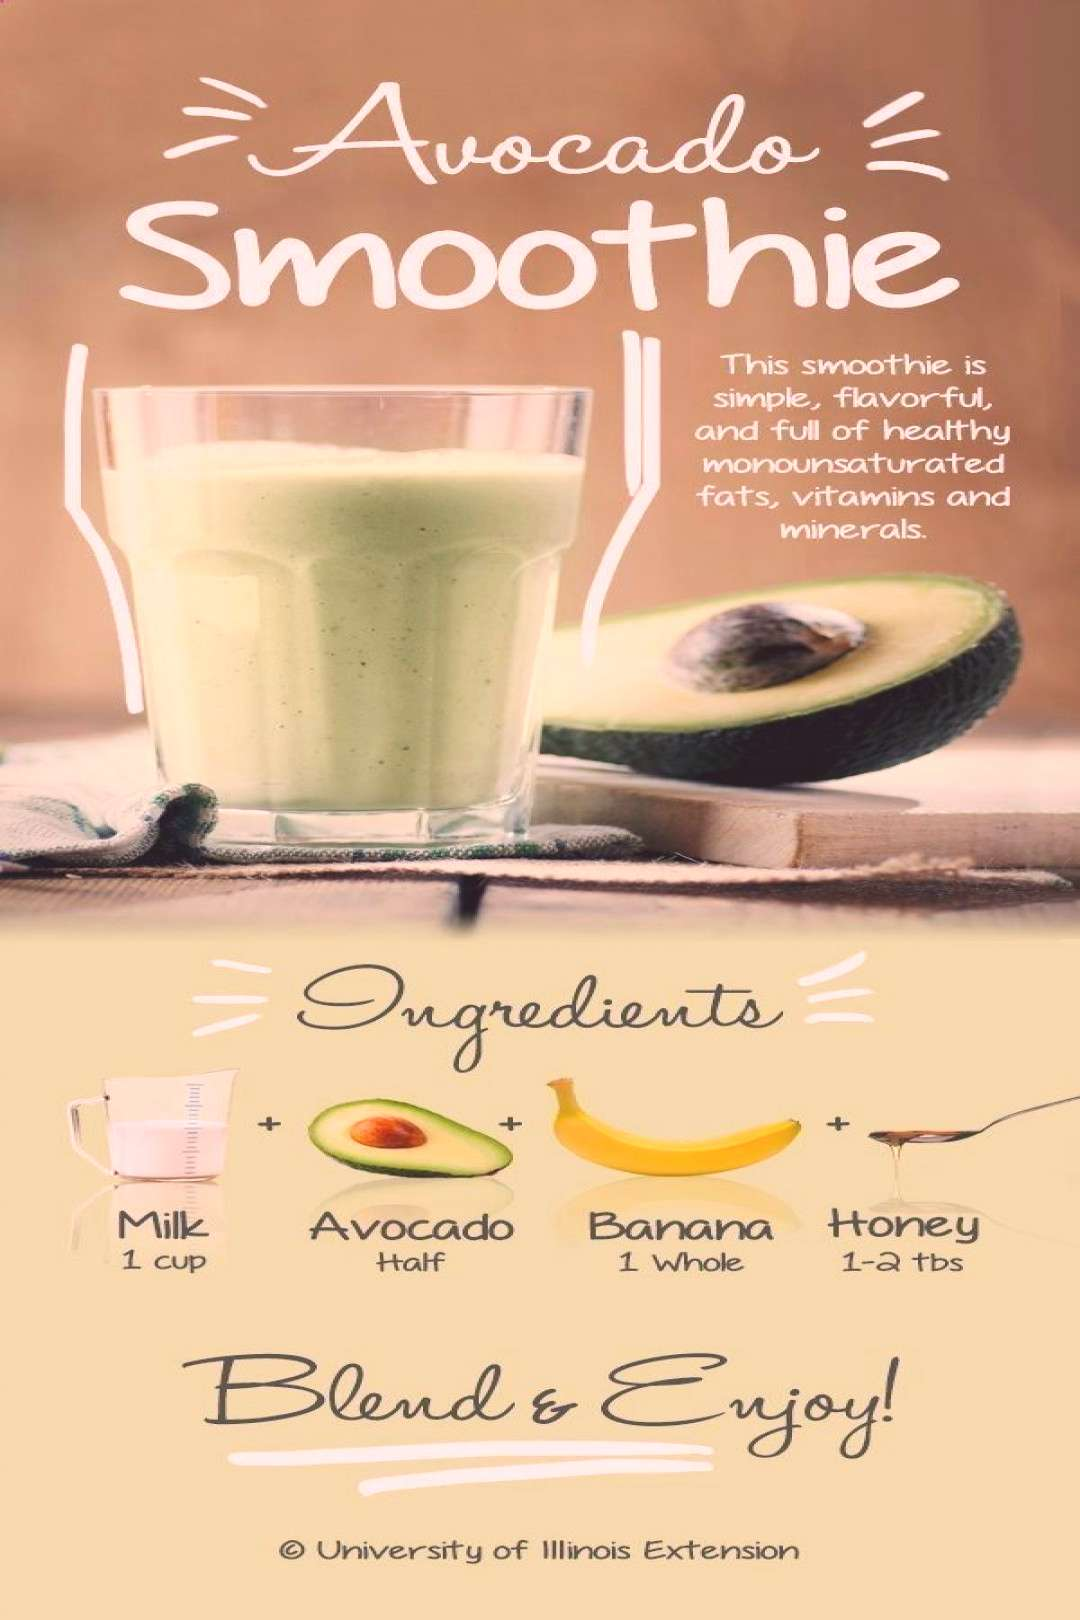 Avocado Smoothie Recipe - Simple, flavorful, and full of healthy monounsaturated fats, vitamins and